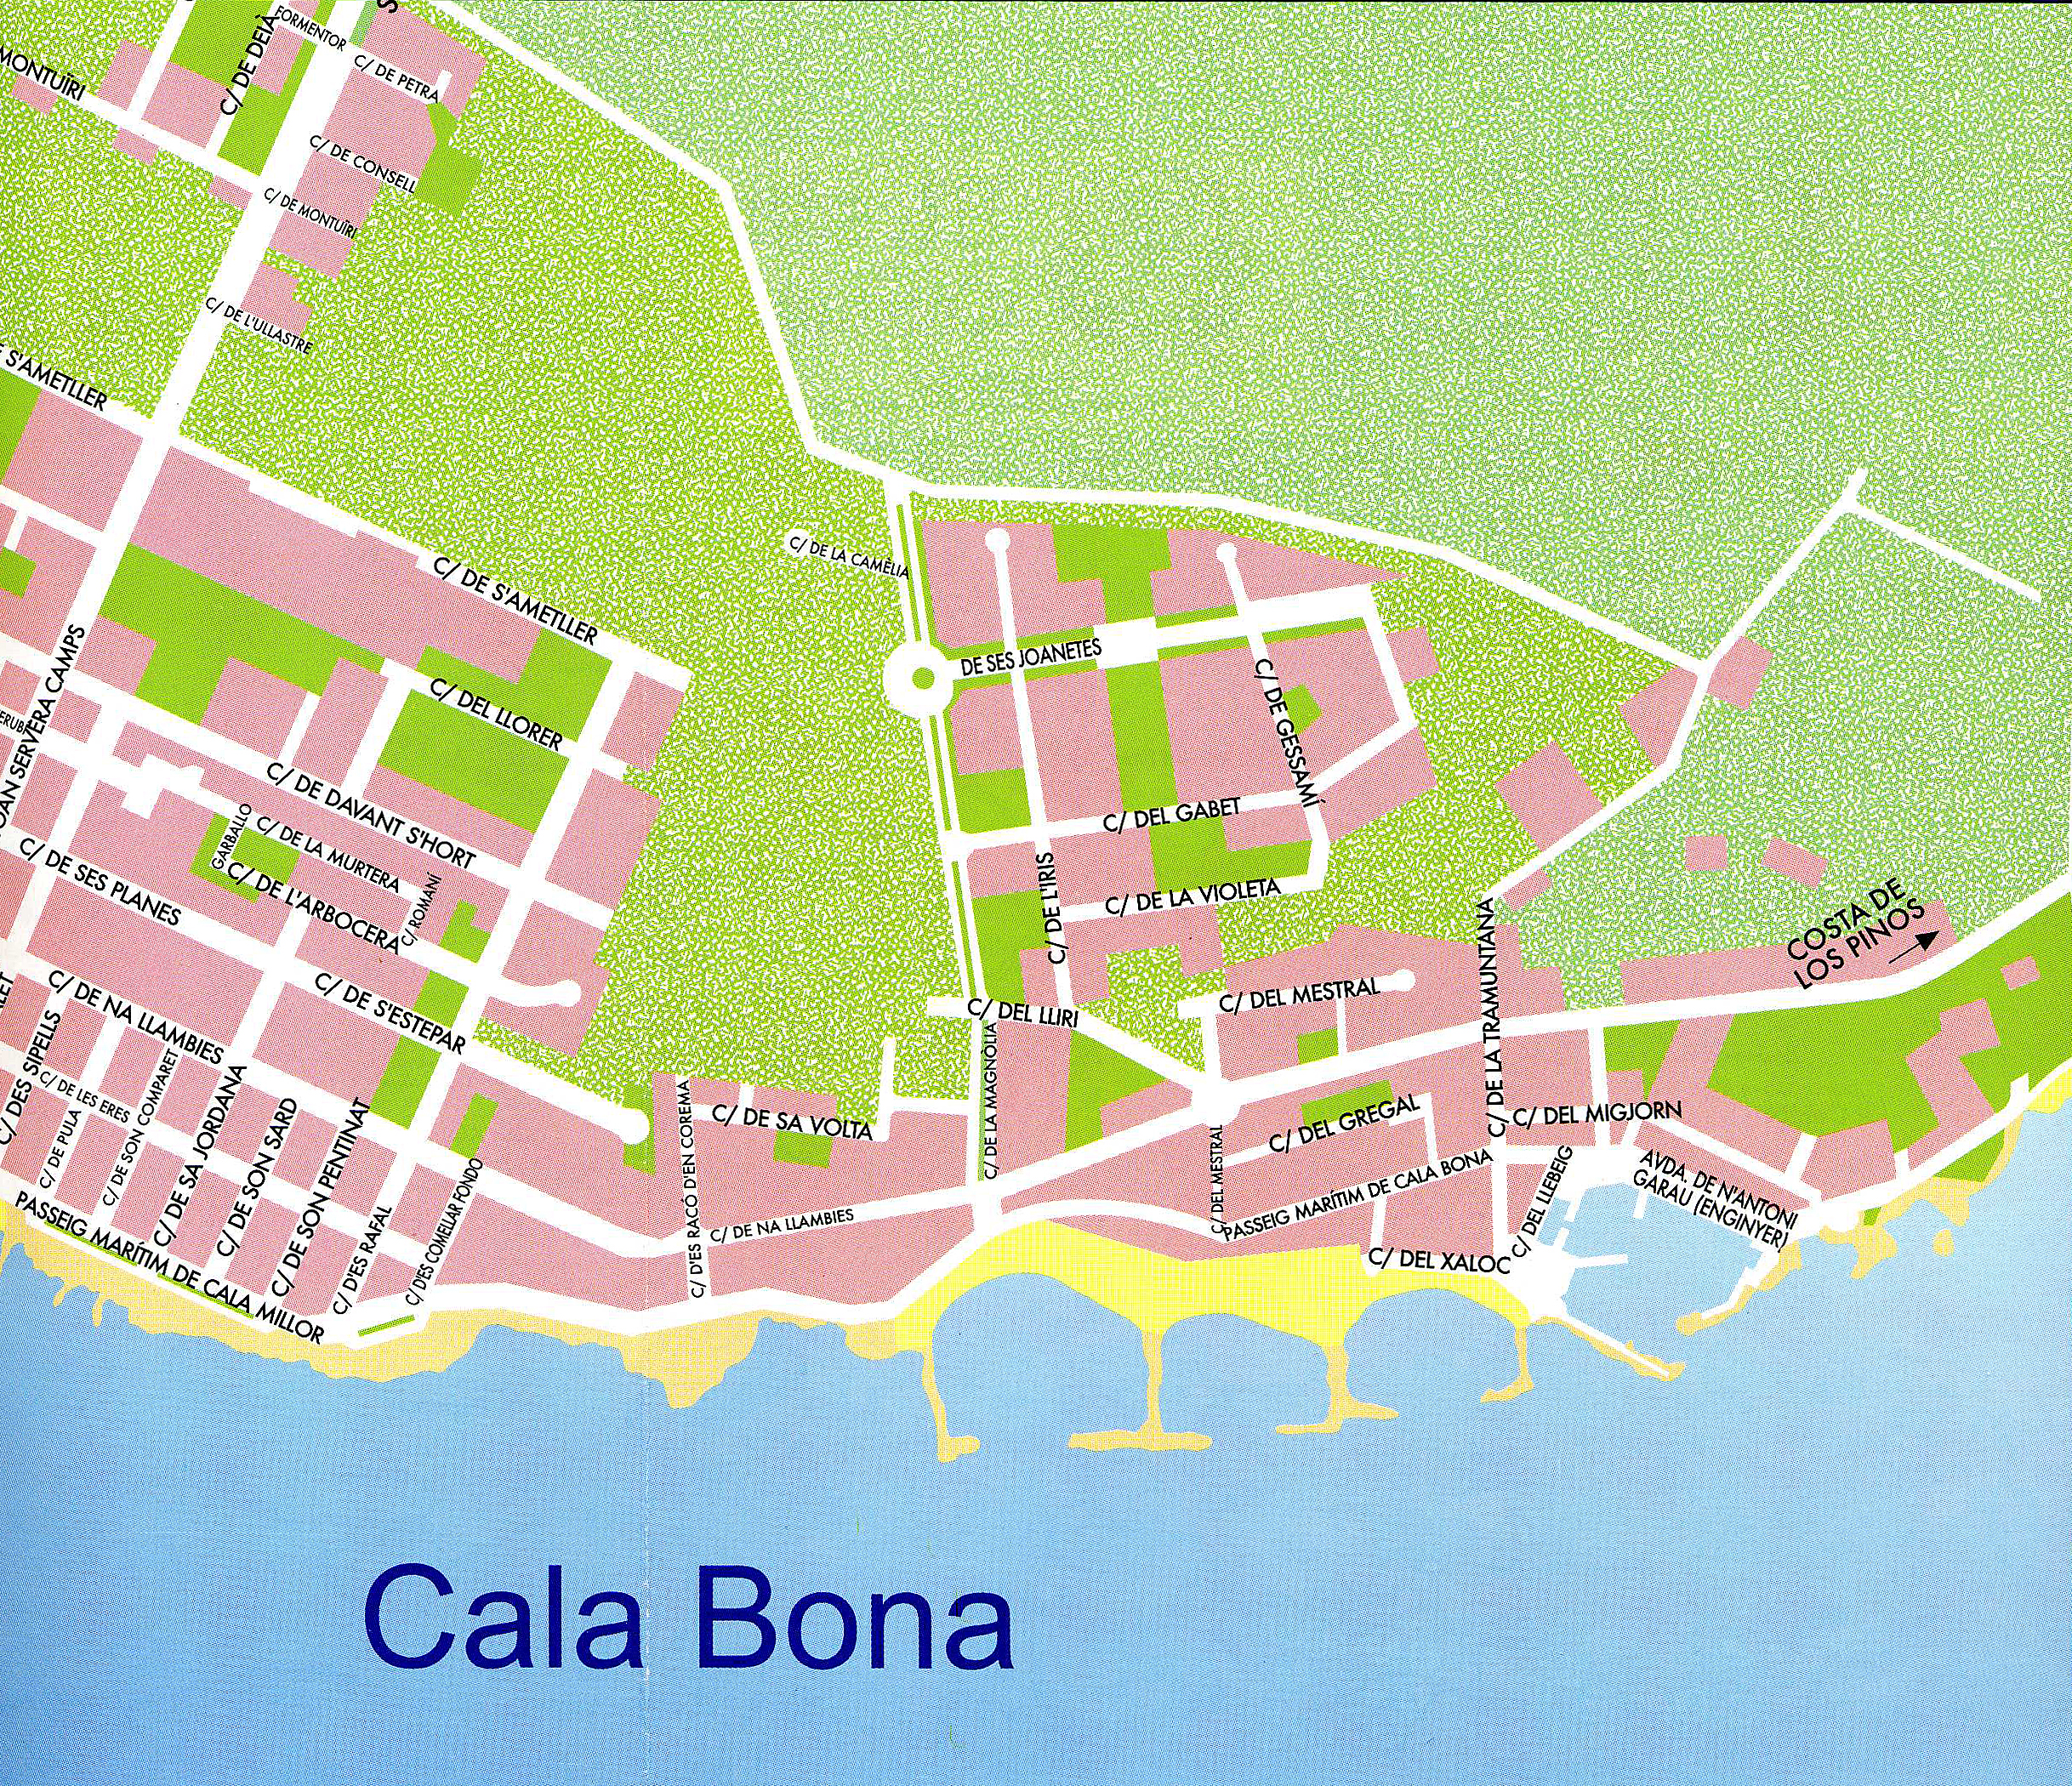 The village of Cala Bona in Majorca